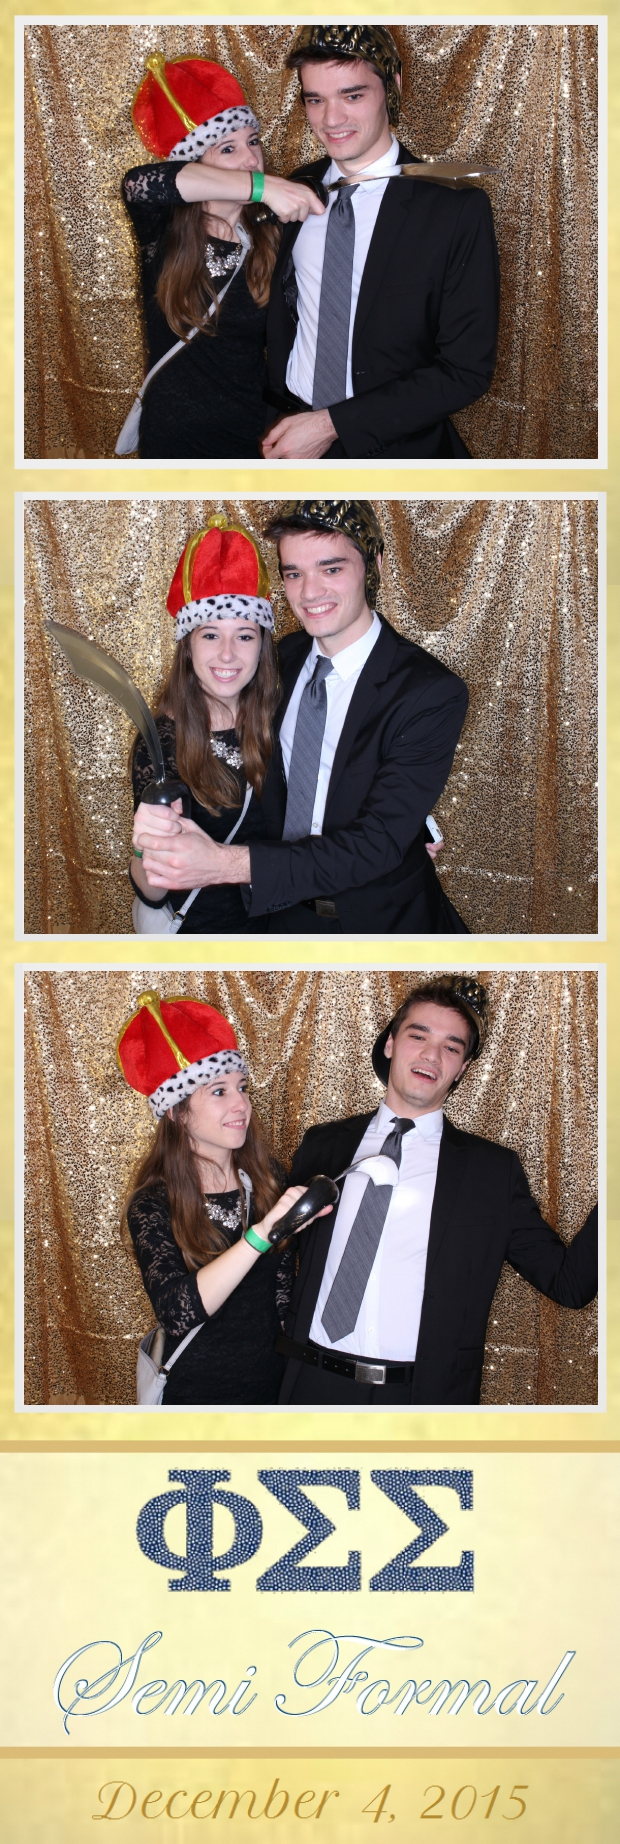 Guest House Events Photo Booth Phi Sigma Sigma Semi Formal (40).jpg